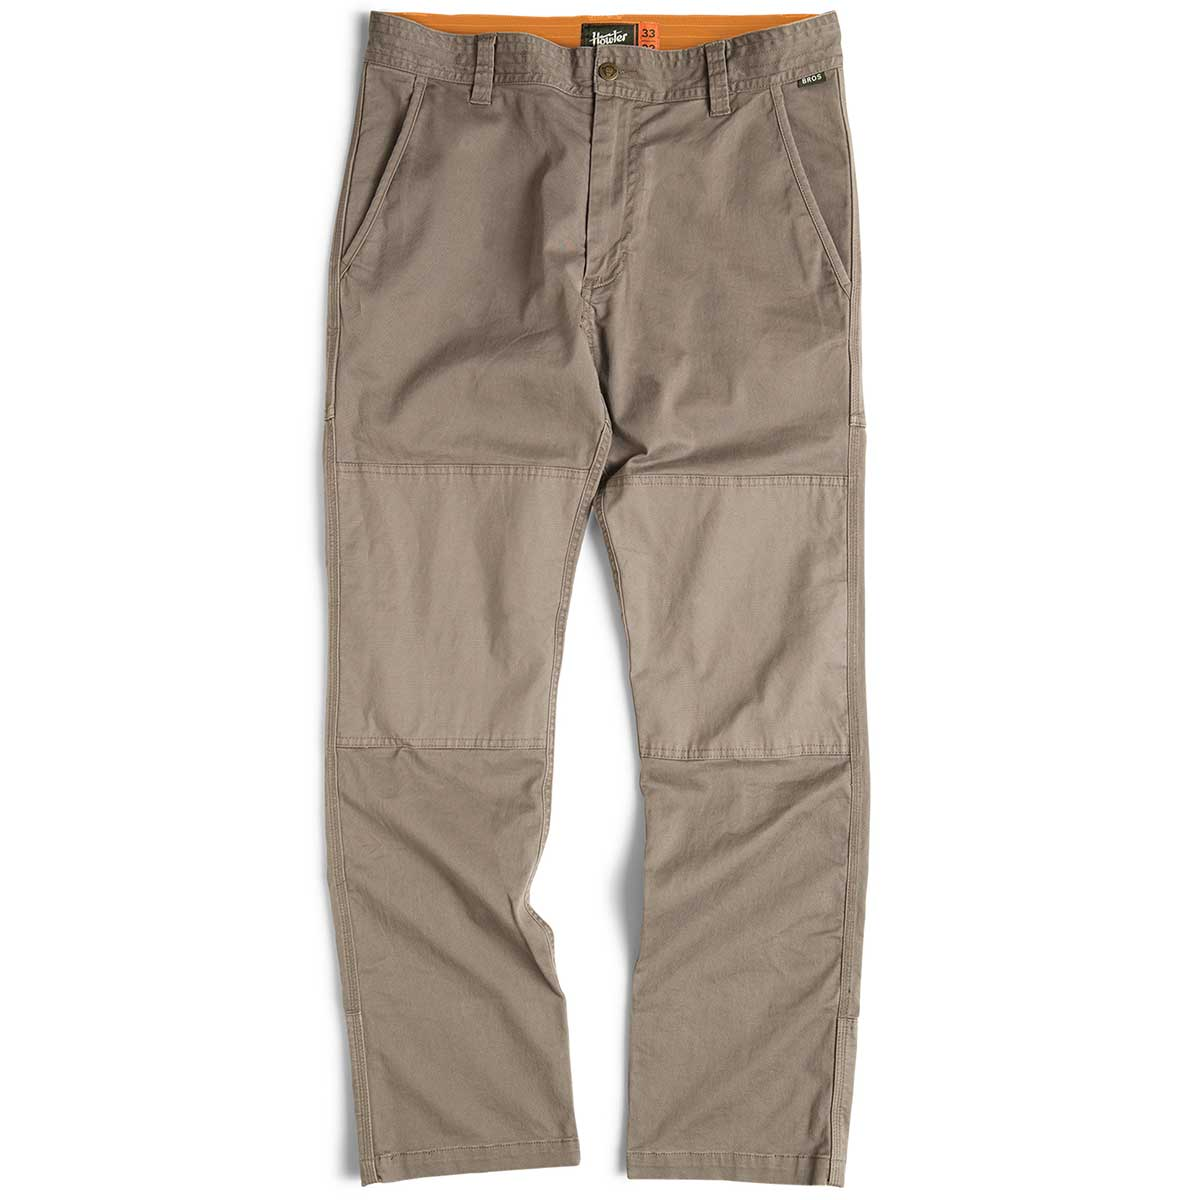 Howler Bros ATX Work Pant in isotaupe